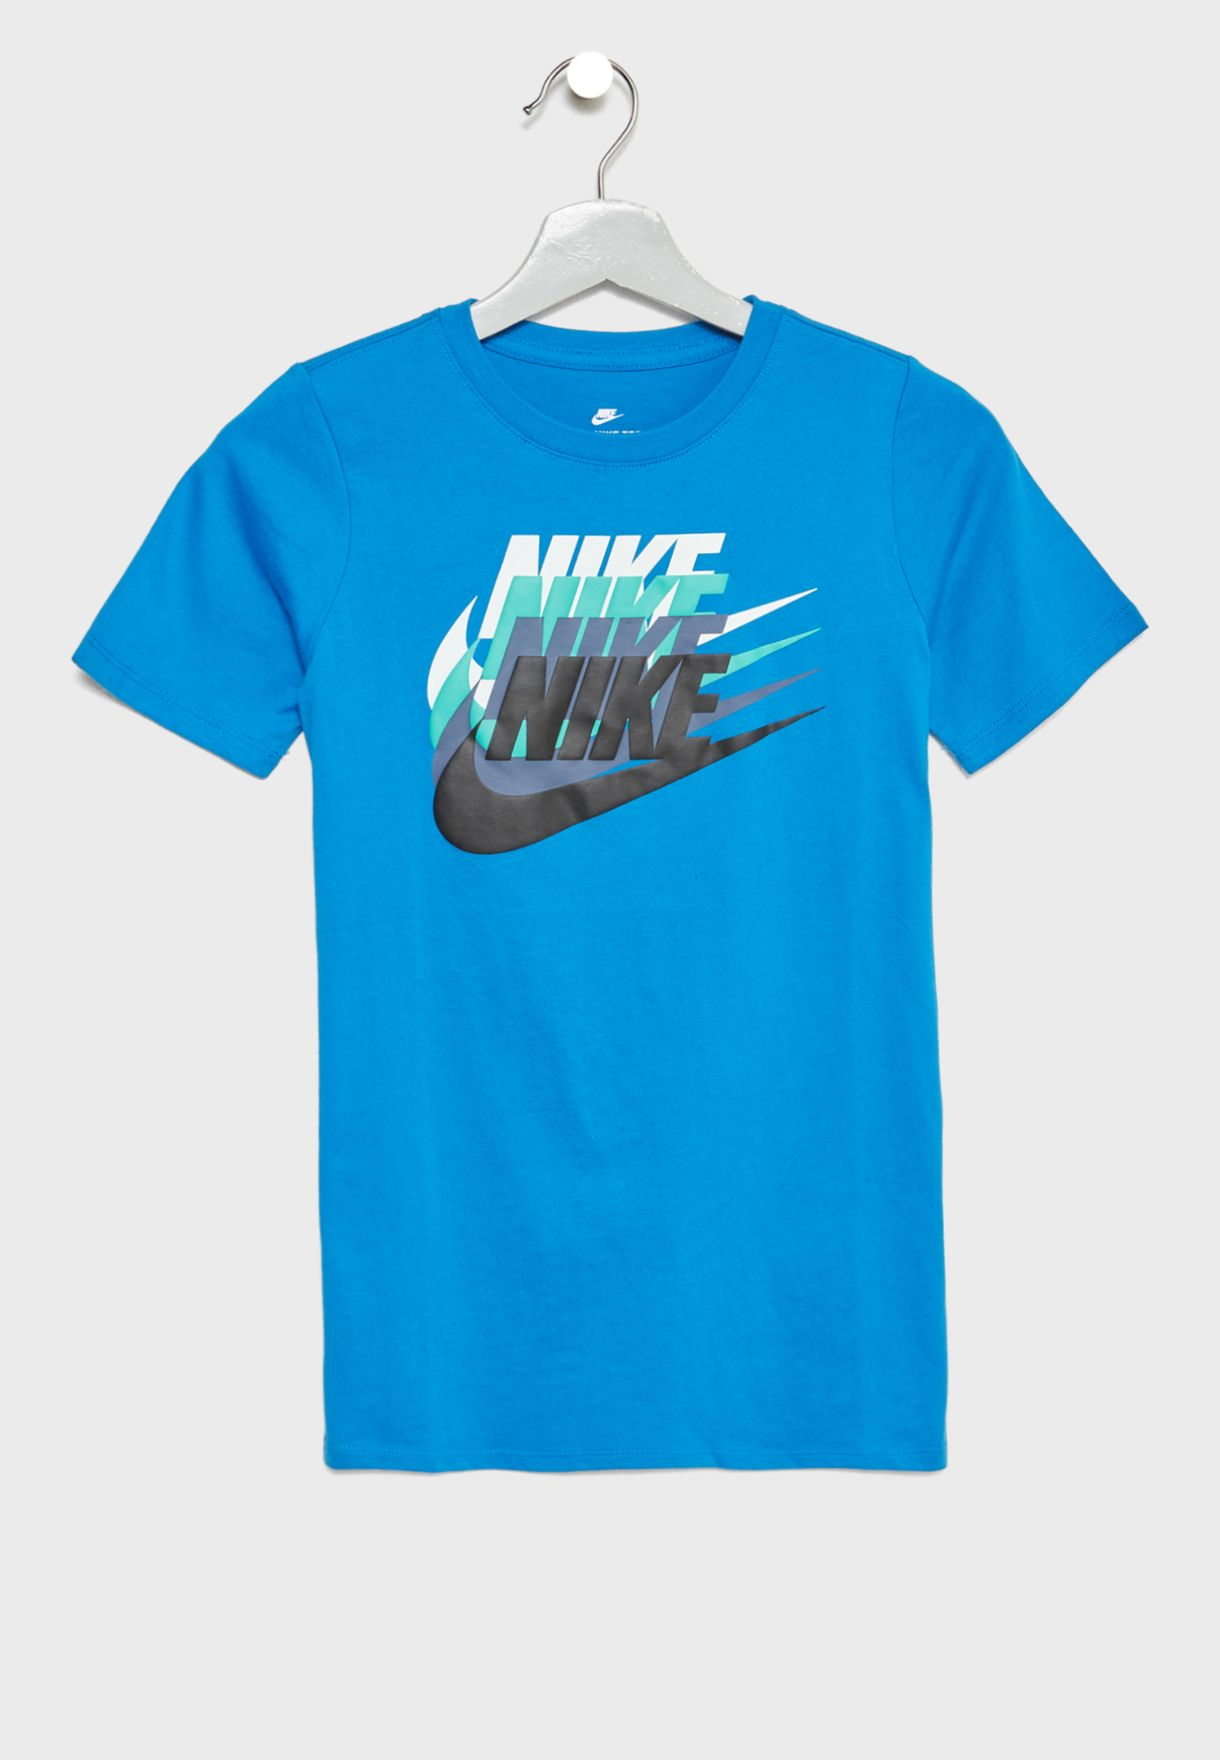 2b364f1a5 Shop Nike blue Youth Sunset Futura T-Shirt 913186-465 for Kids in ...